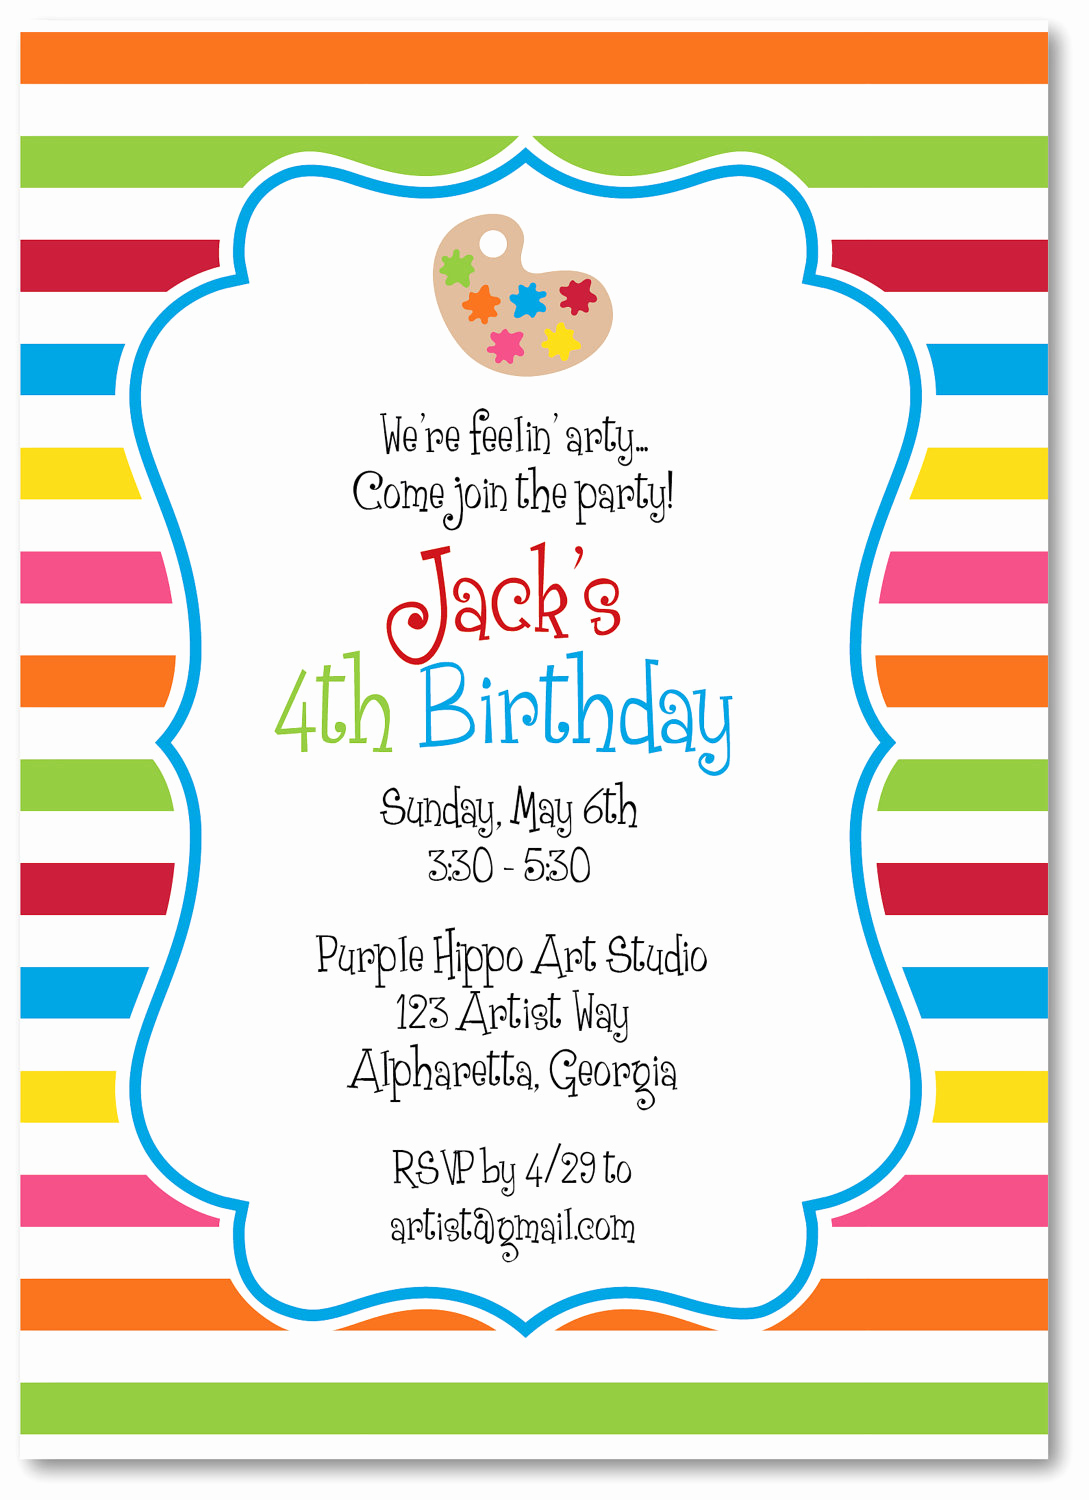 Free Art Party Invitation Templates New Art Party Invitation Templates